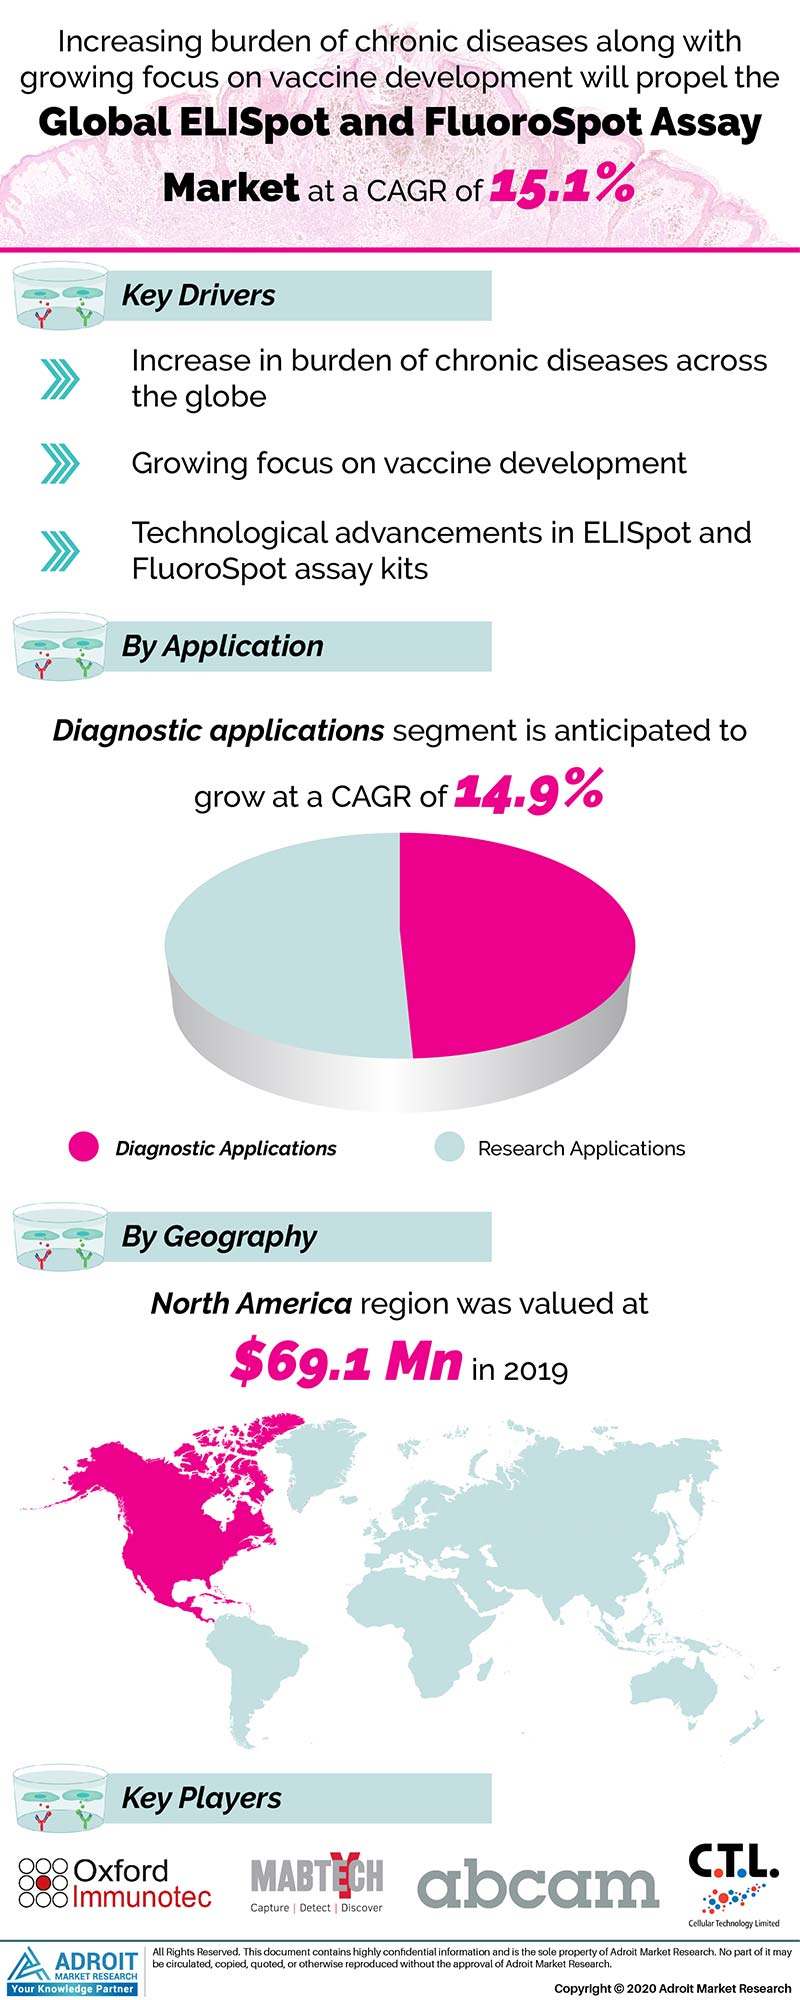 Elispot And Fluorospot Assay Market Size 2017 By Application, Product, Region and Forecast 2019 to 2025